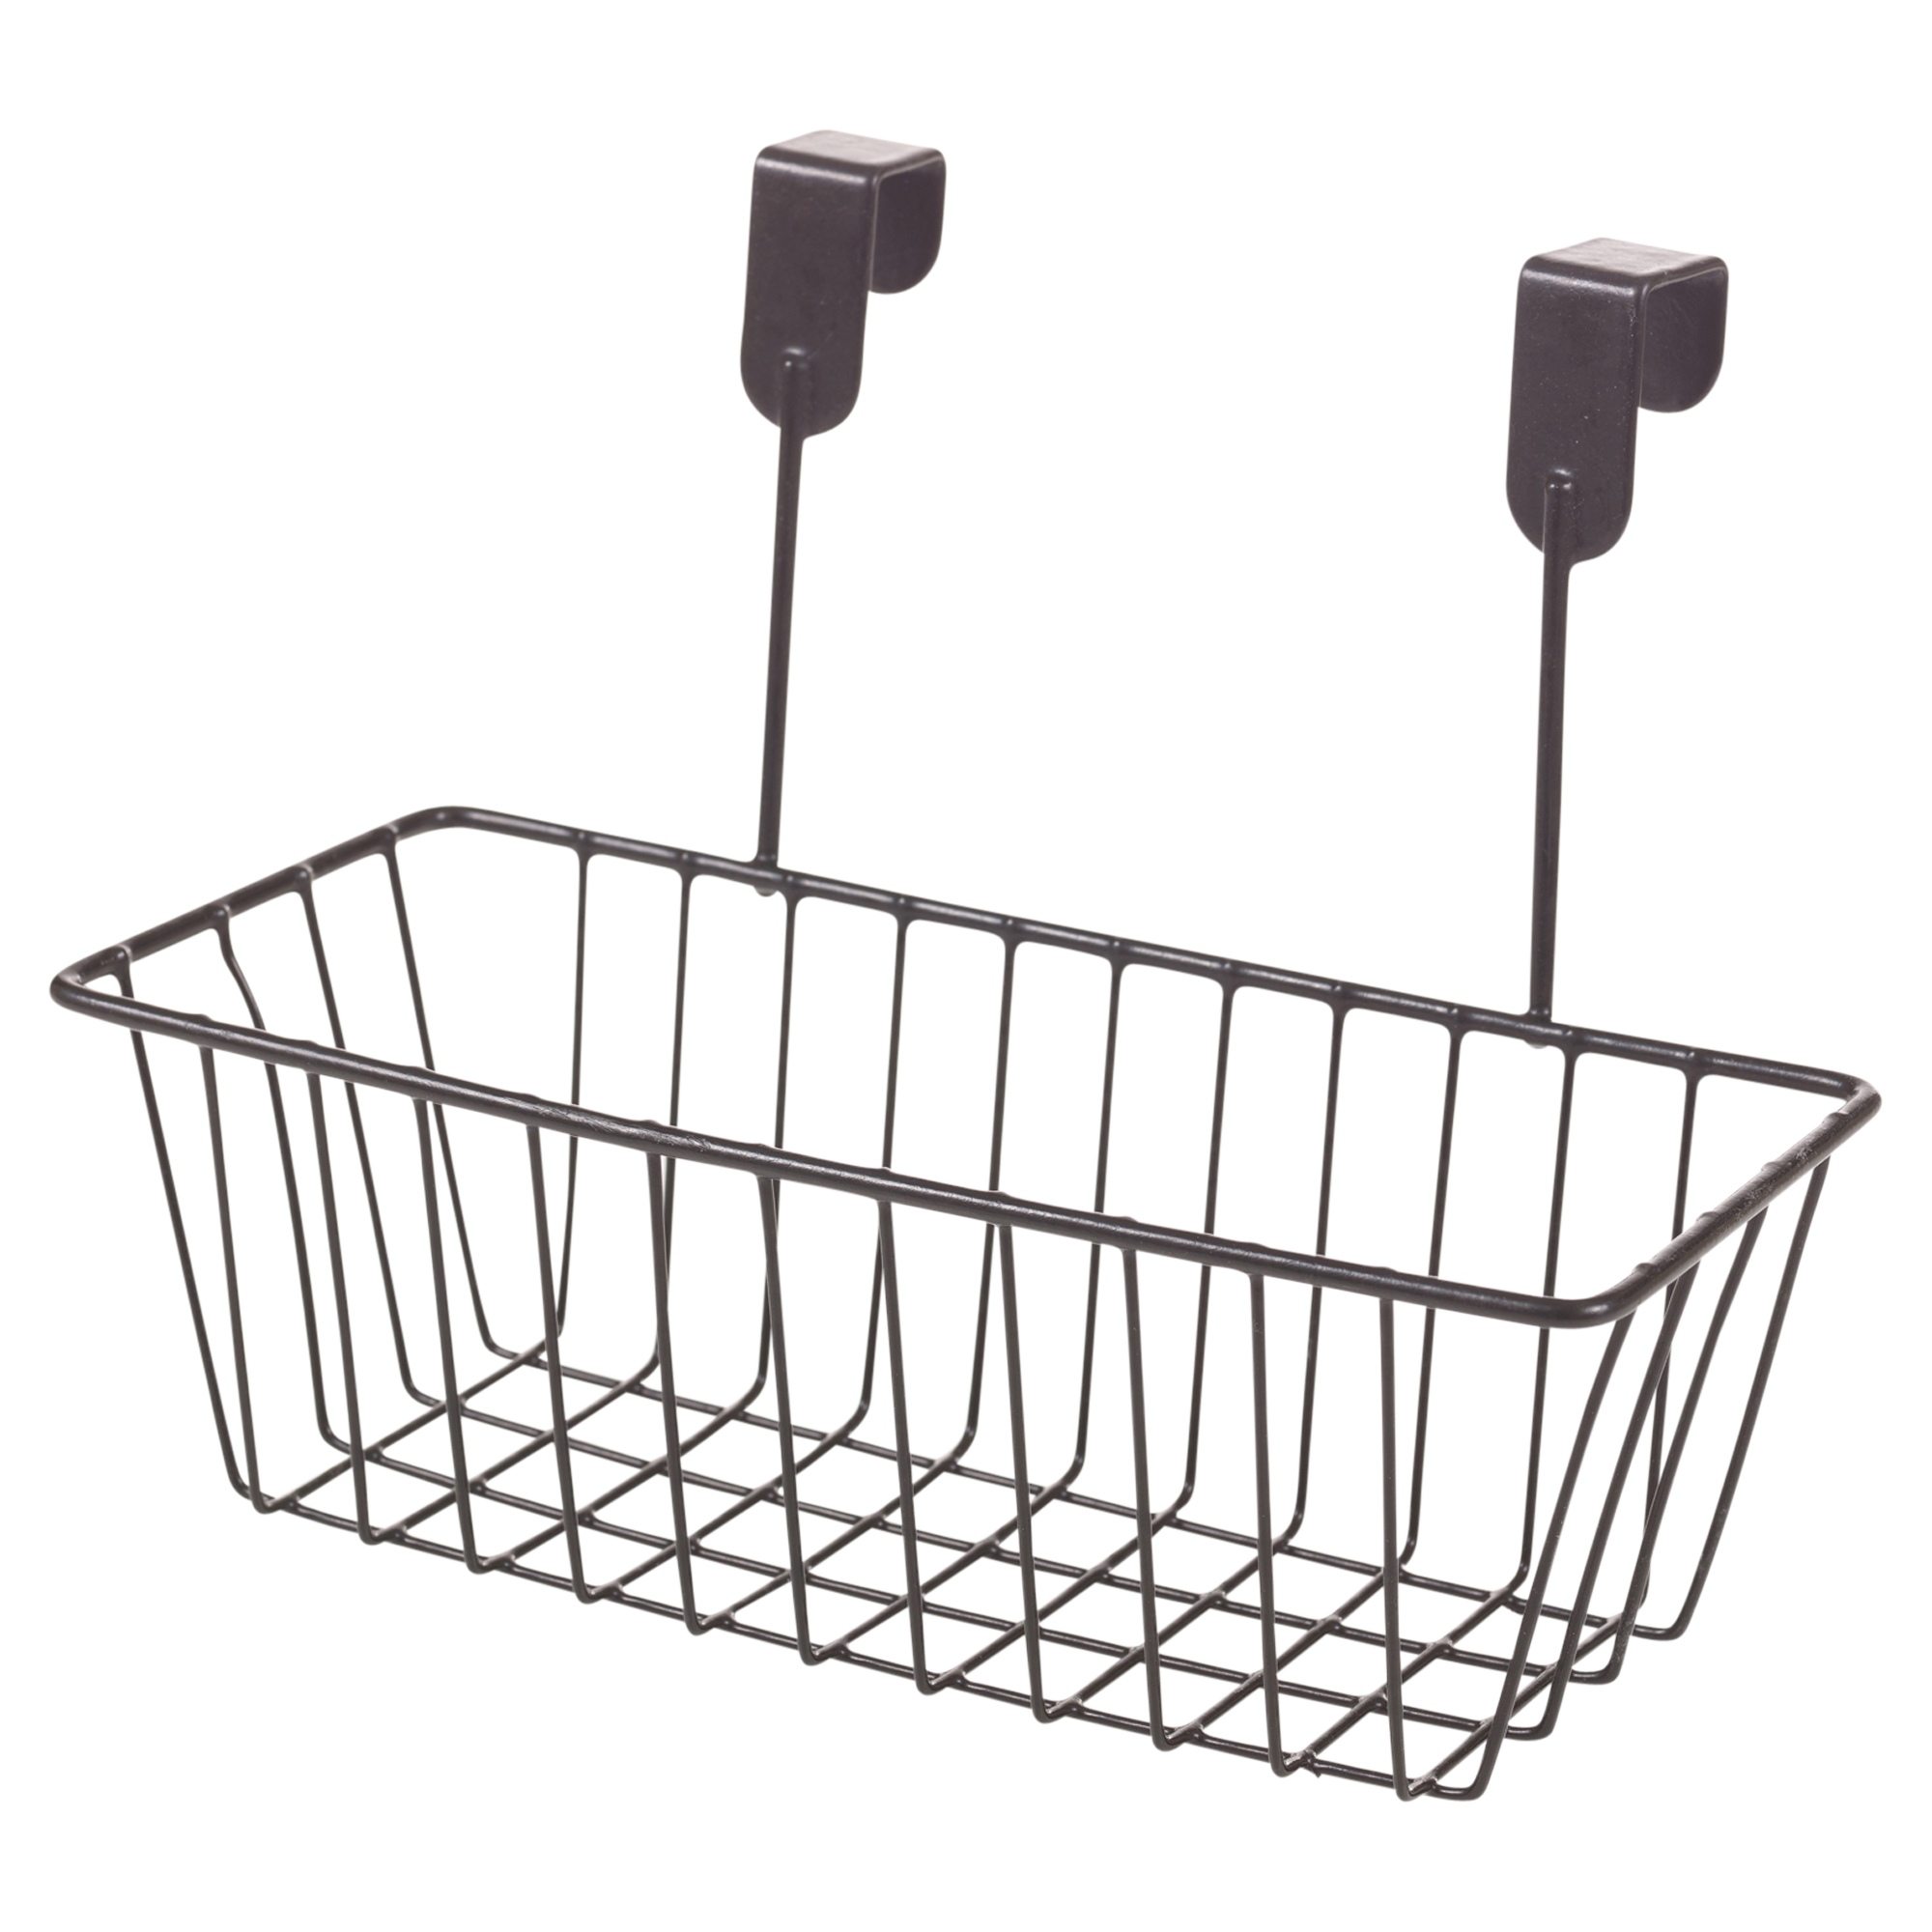 Baskets Above Kitchen Cabinets: Set Of 2 Over Kitchen Cabinet Door Storage Basket Rack